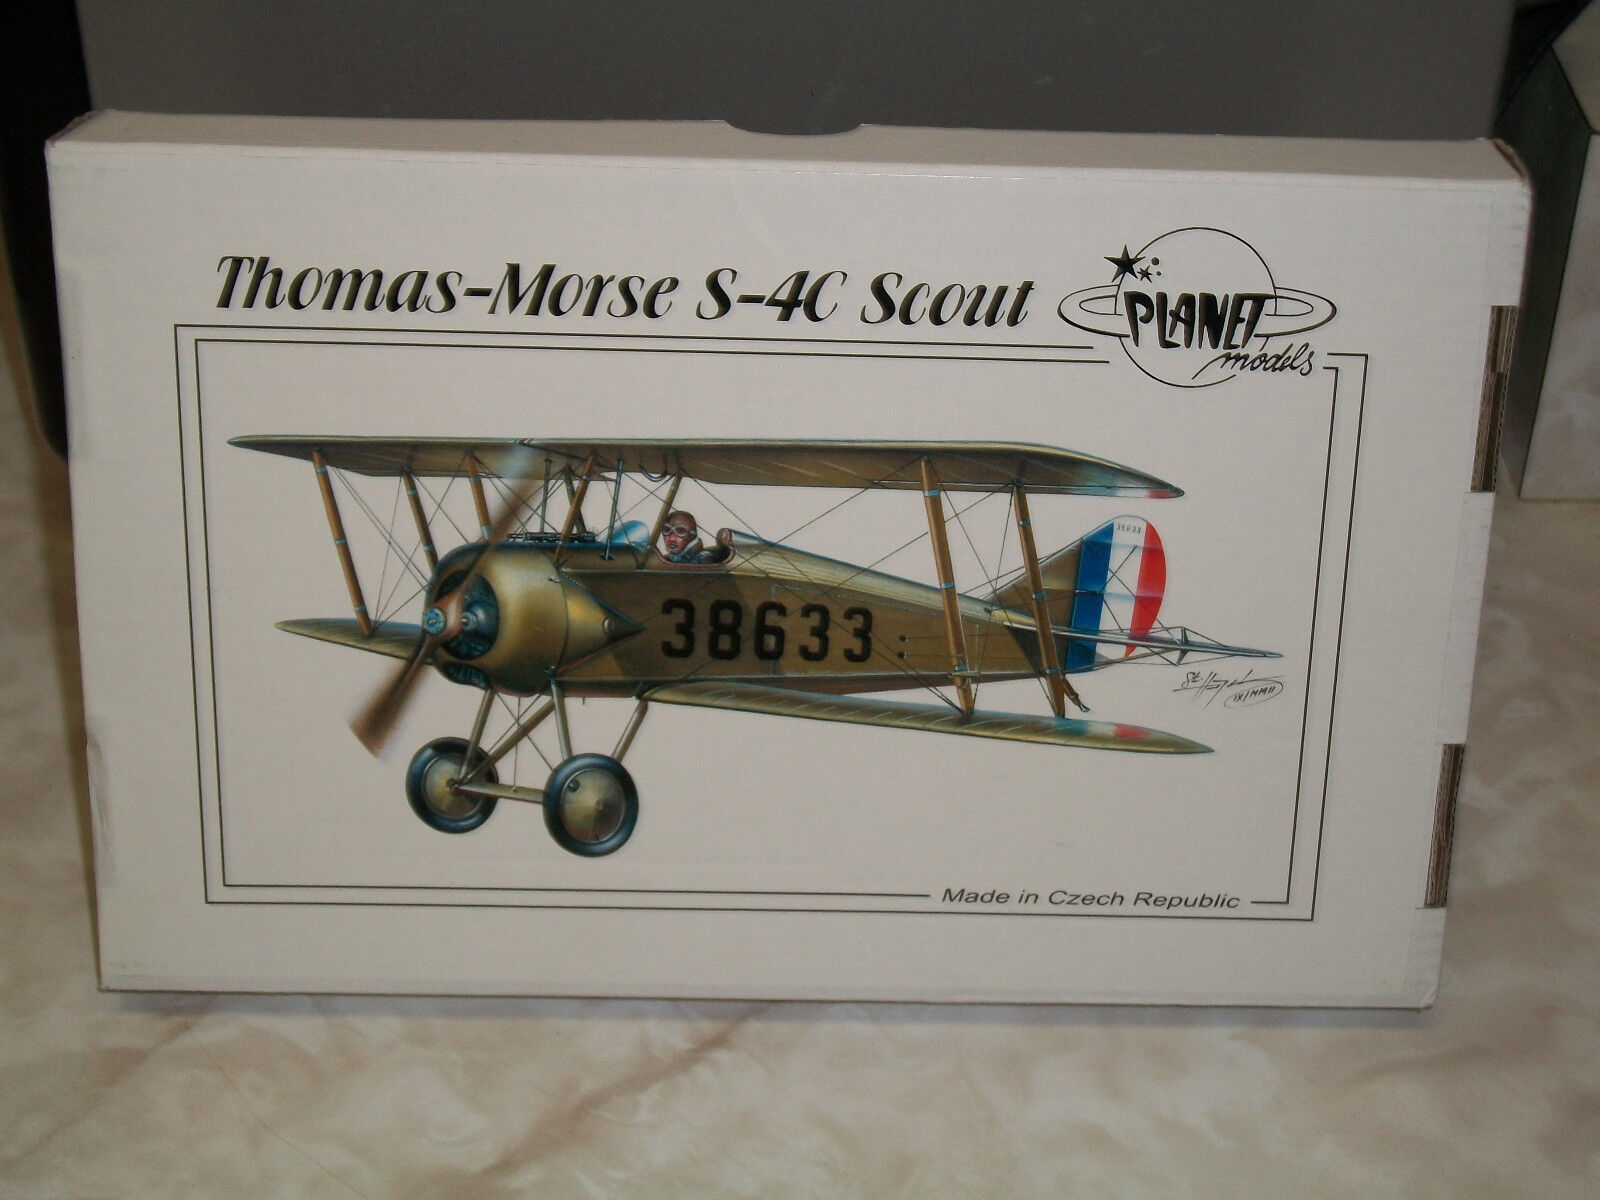 Planet Models 1 48 Scale Resin Thomas-Morse S-4C Scout